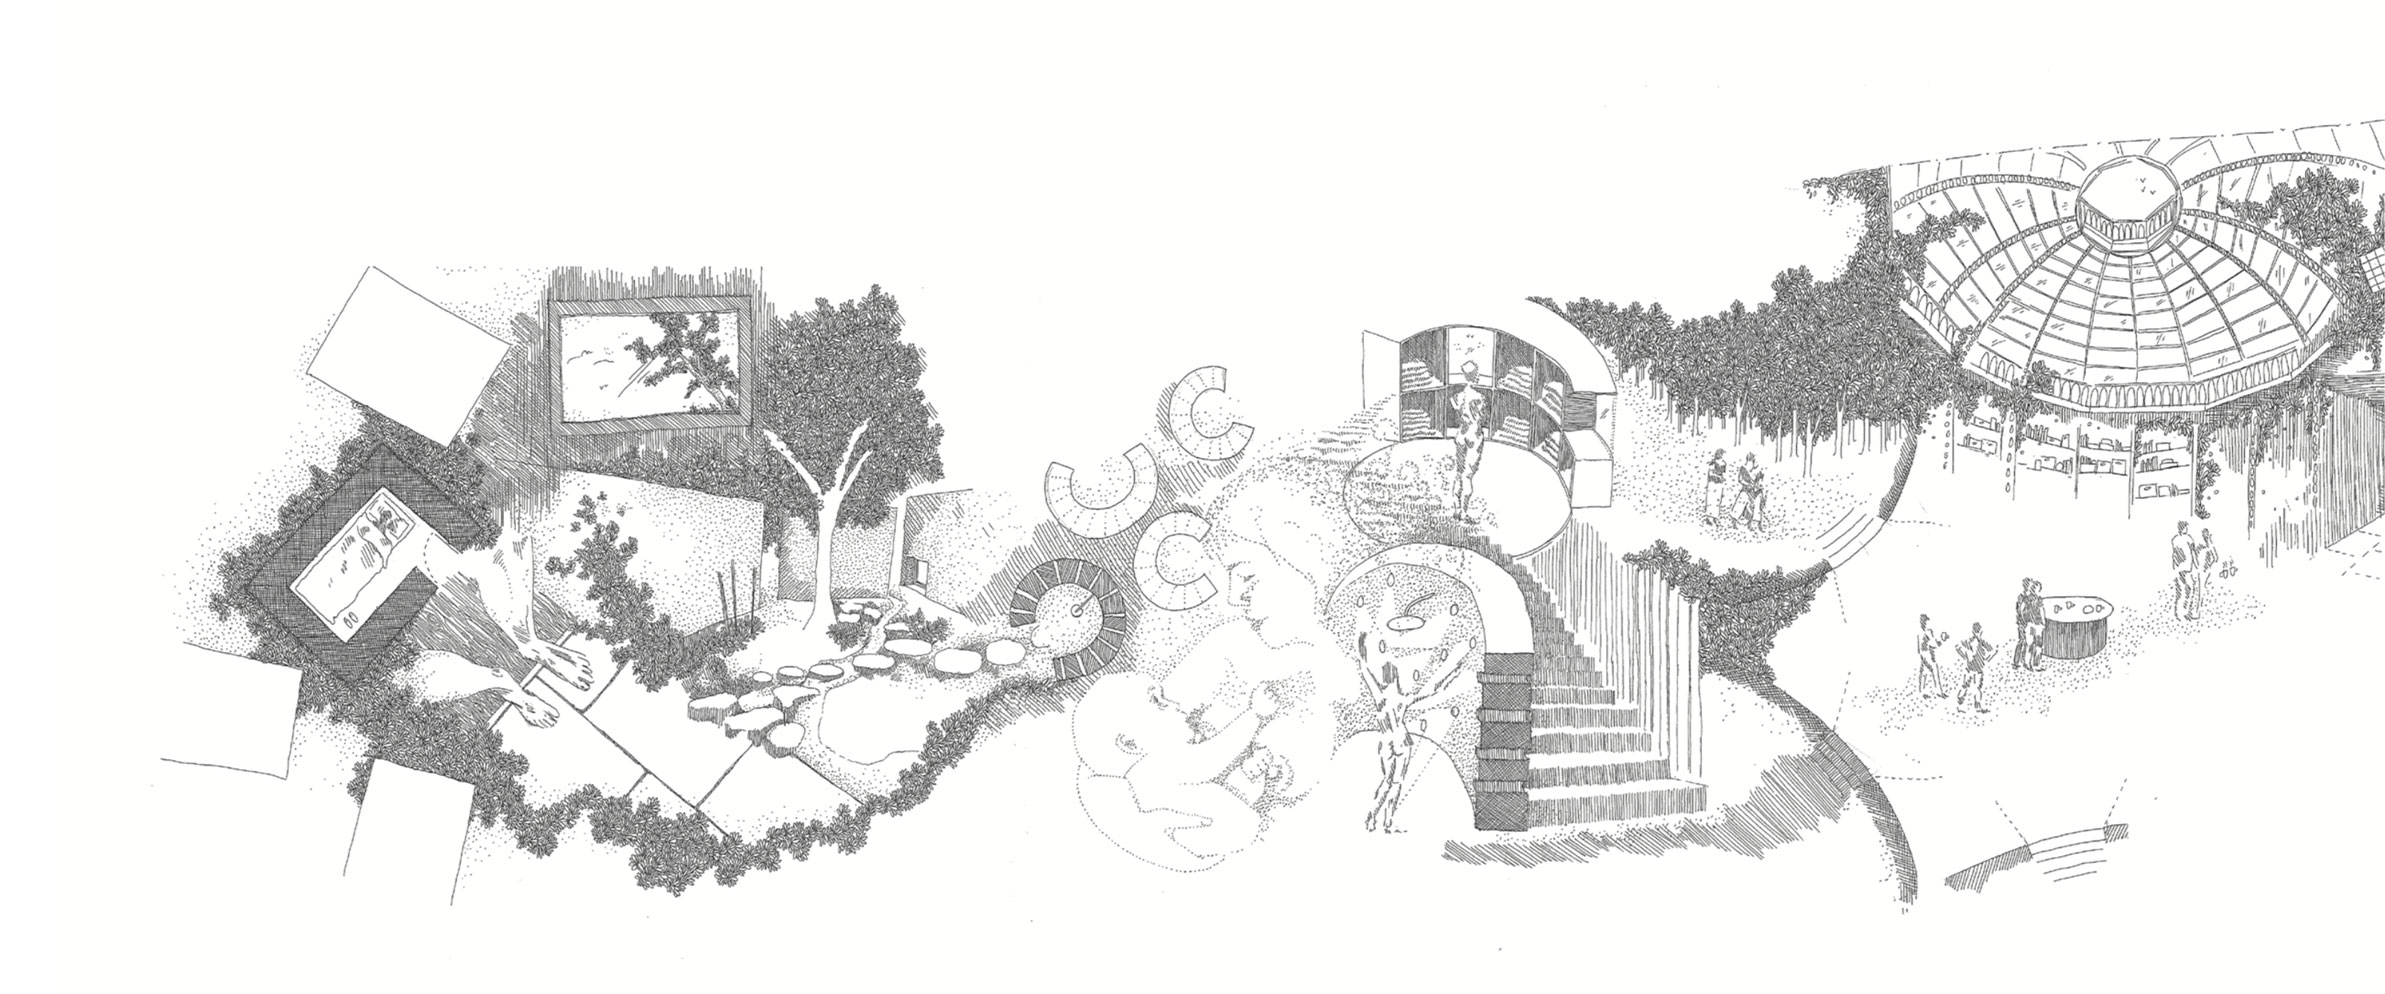 Drawing used to describe the day of a resident within her dwelling.